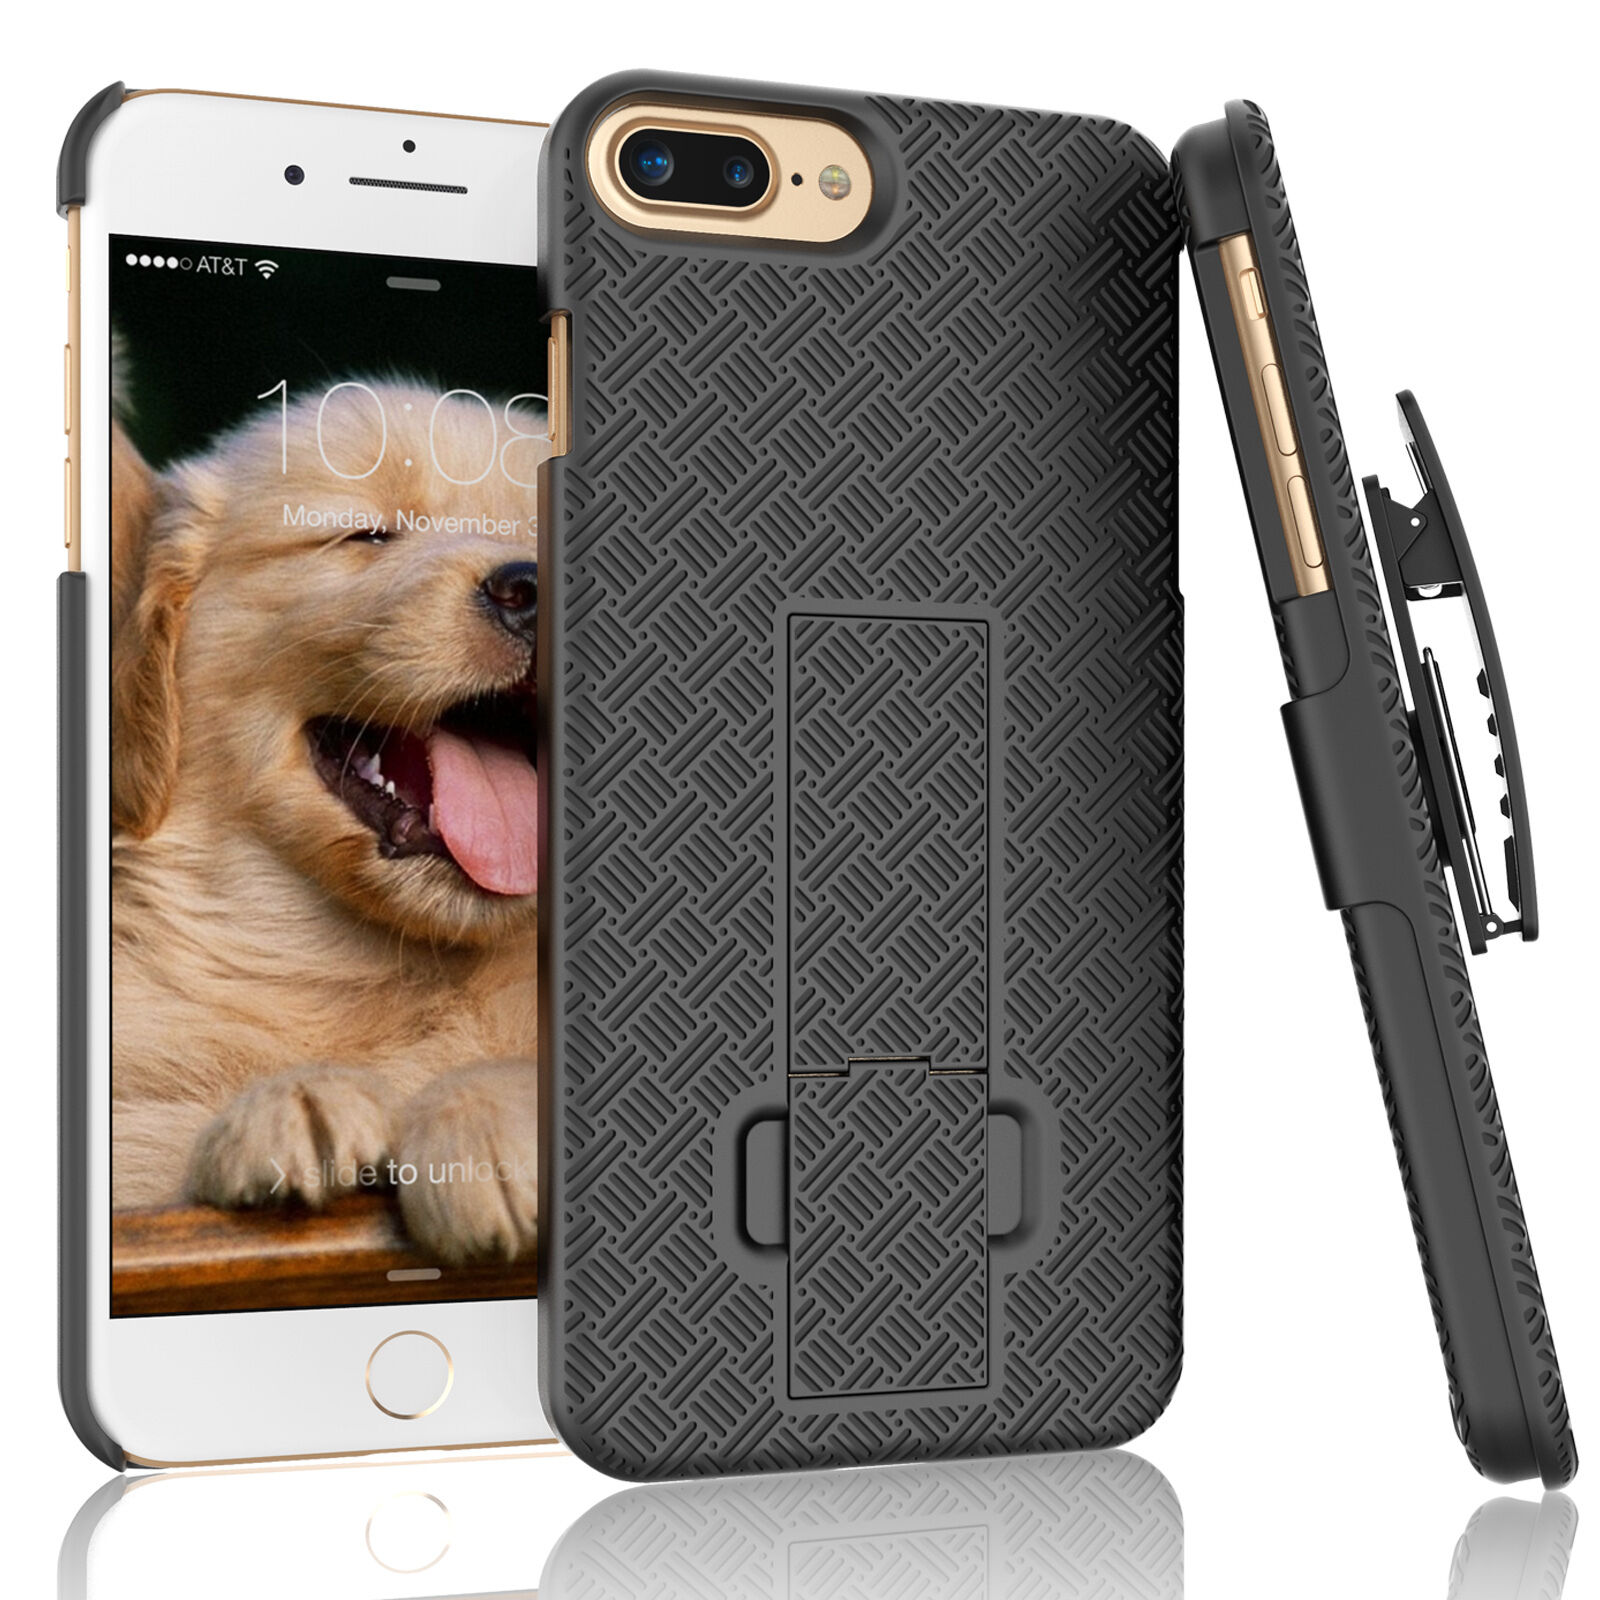 FOR IPHONE 7 / 7 PLUS SHELL HOLSTER BELT CLIP COMBO CASE COV